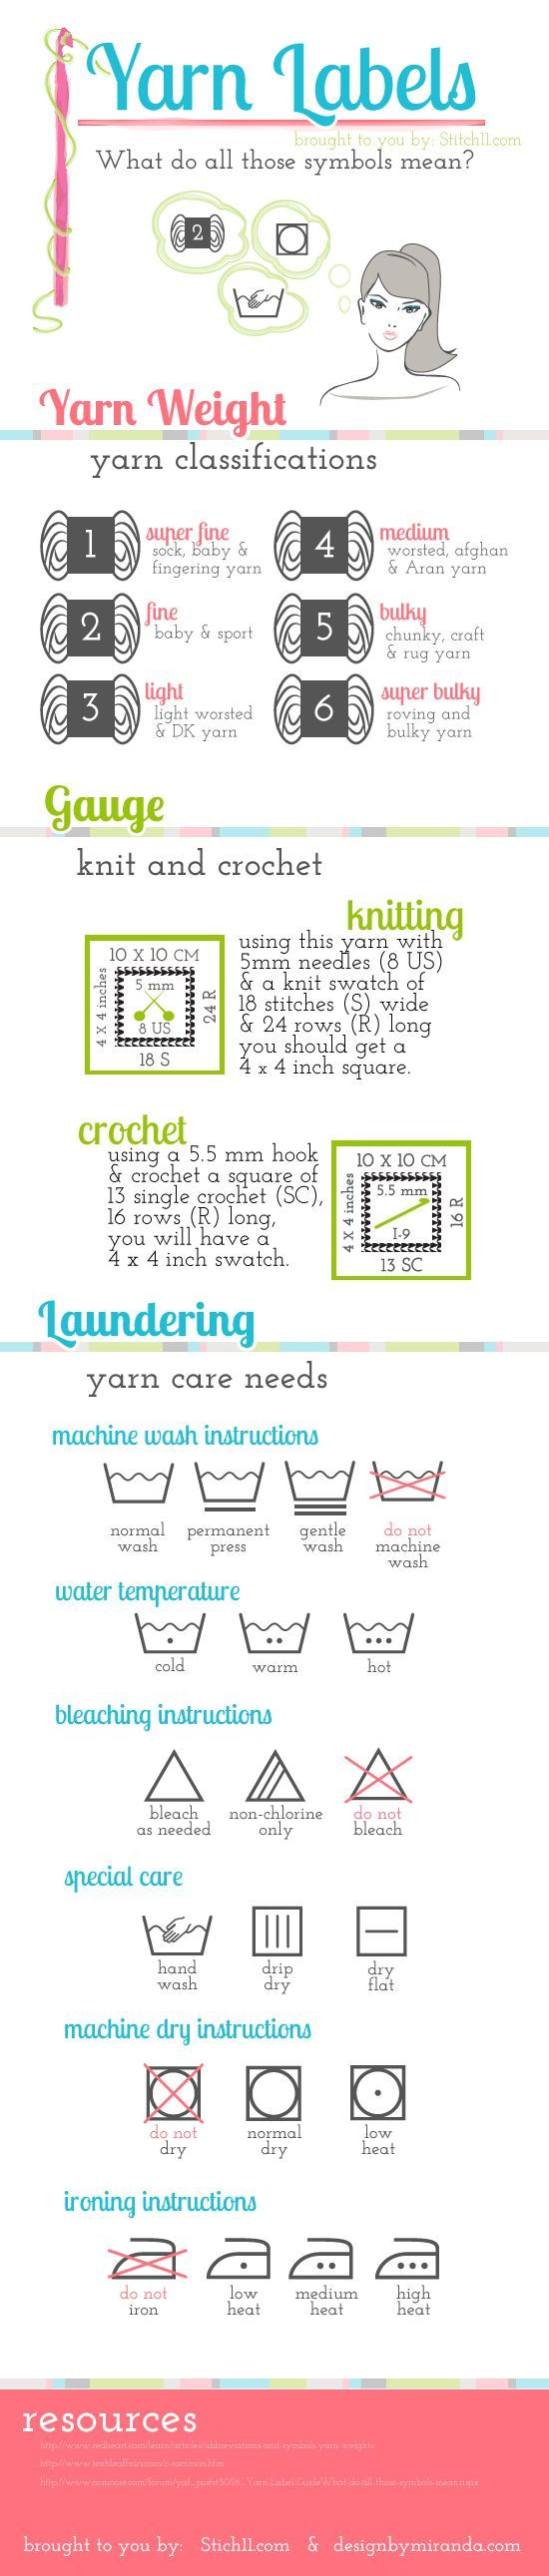 27 insanely helpful diagrams every diy enthusiast needs yarns 27 insanely helpful diagrams every diy enthusiast needs biocorpaavc Images